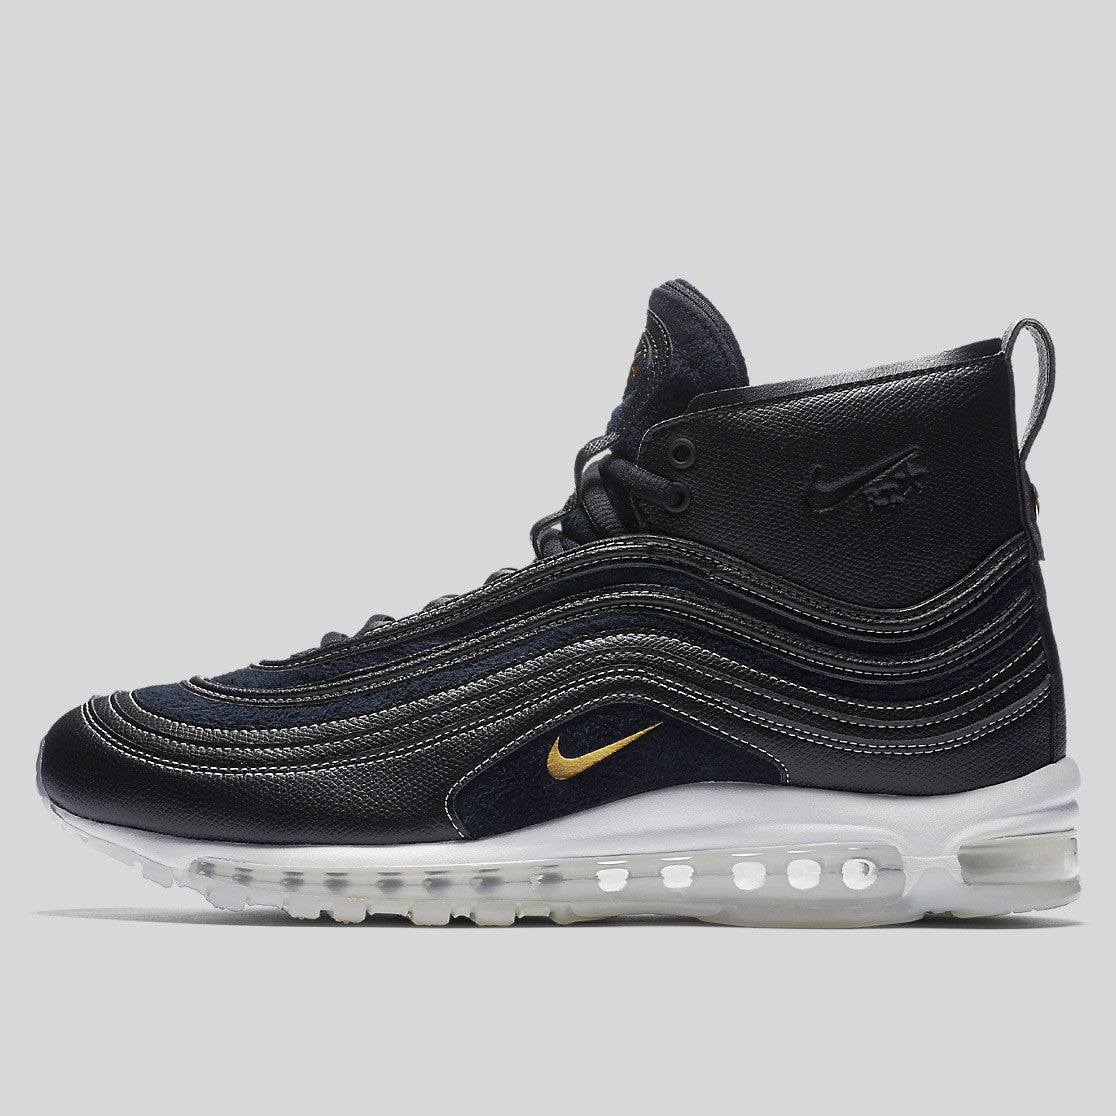 buy popular e3b6d cb0ba Riccardo Tisci x Nike Air Max 97 Mid   RT Black Metallic Gold White  (913314-001)   KIX-FILES